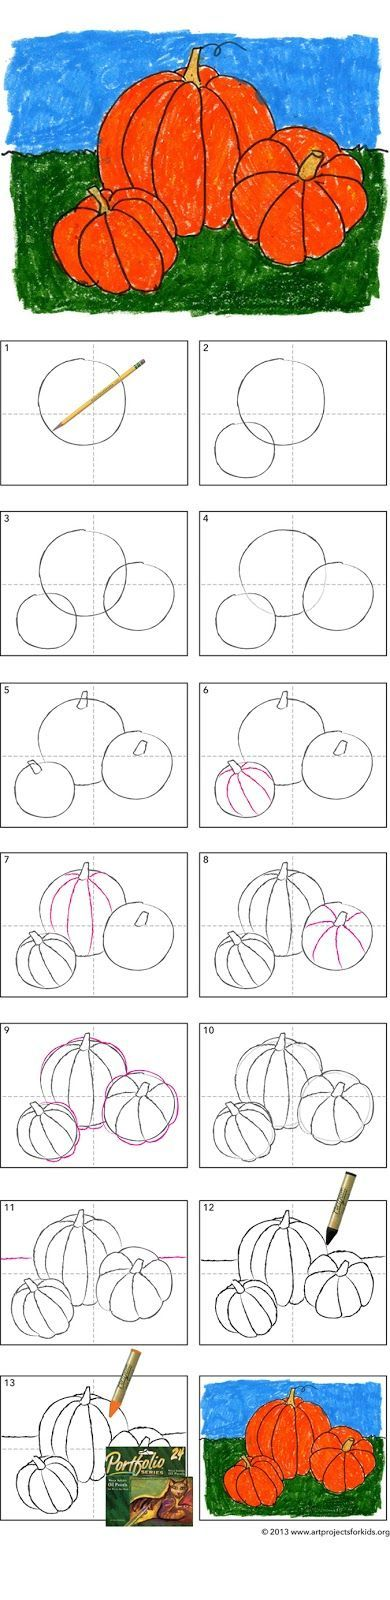 How to Draw a Pumpkin · Art Projects for Kids